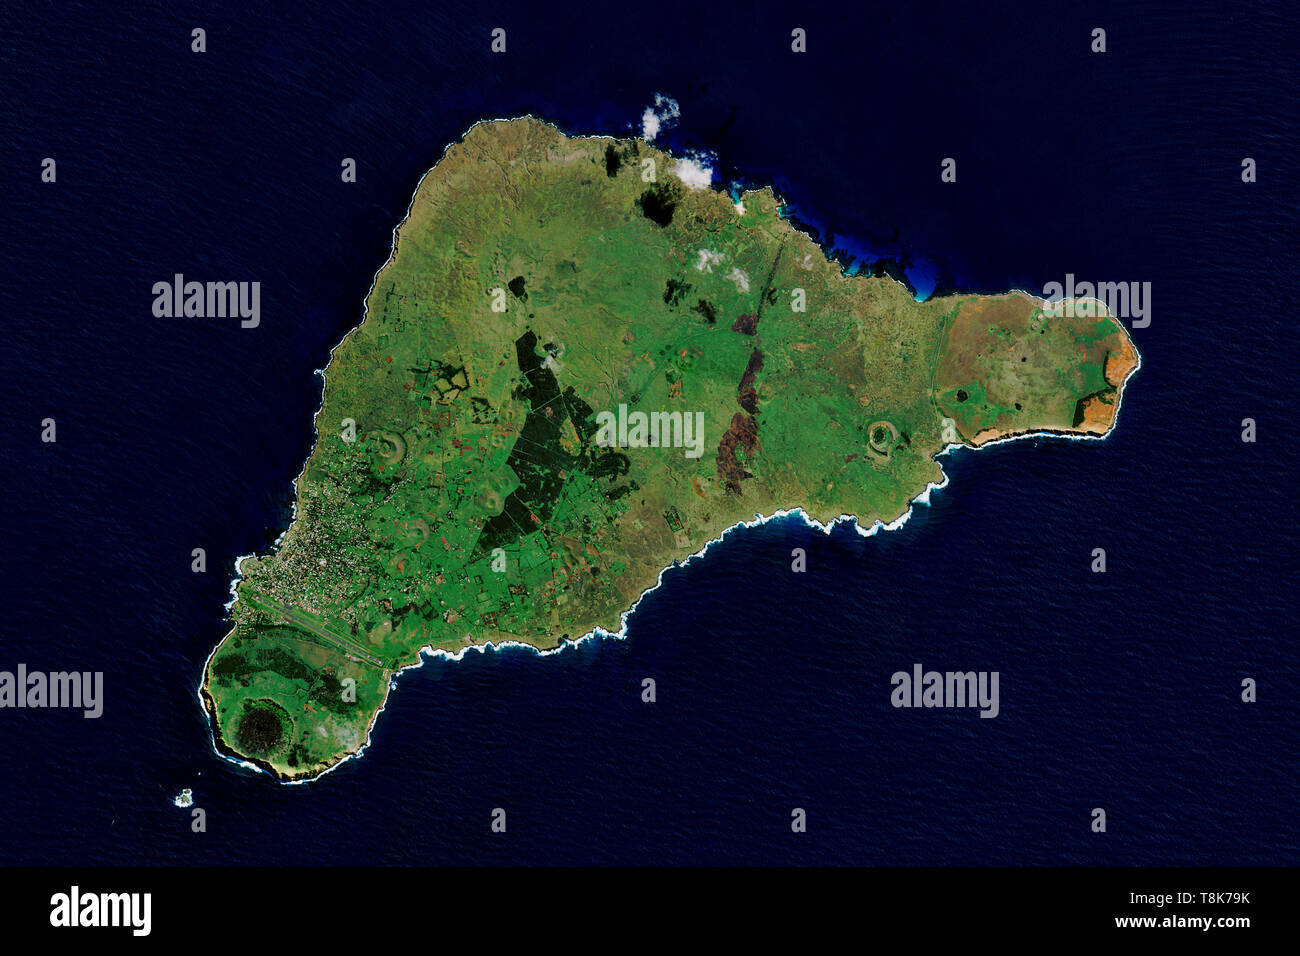 Easter Island in the southeastern Pacific Ocean seen from space - contains modified Copernicus Sentinel Data (2019) Stock Photo